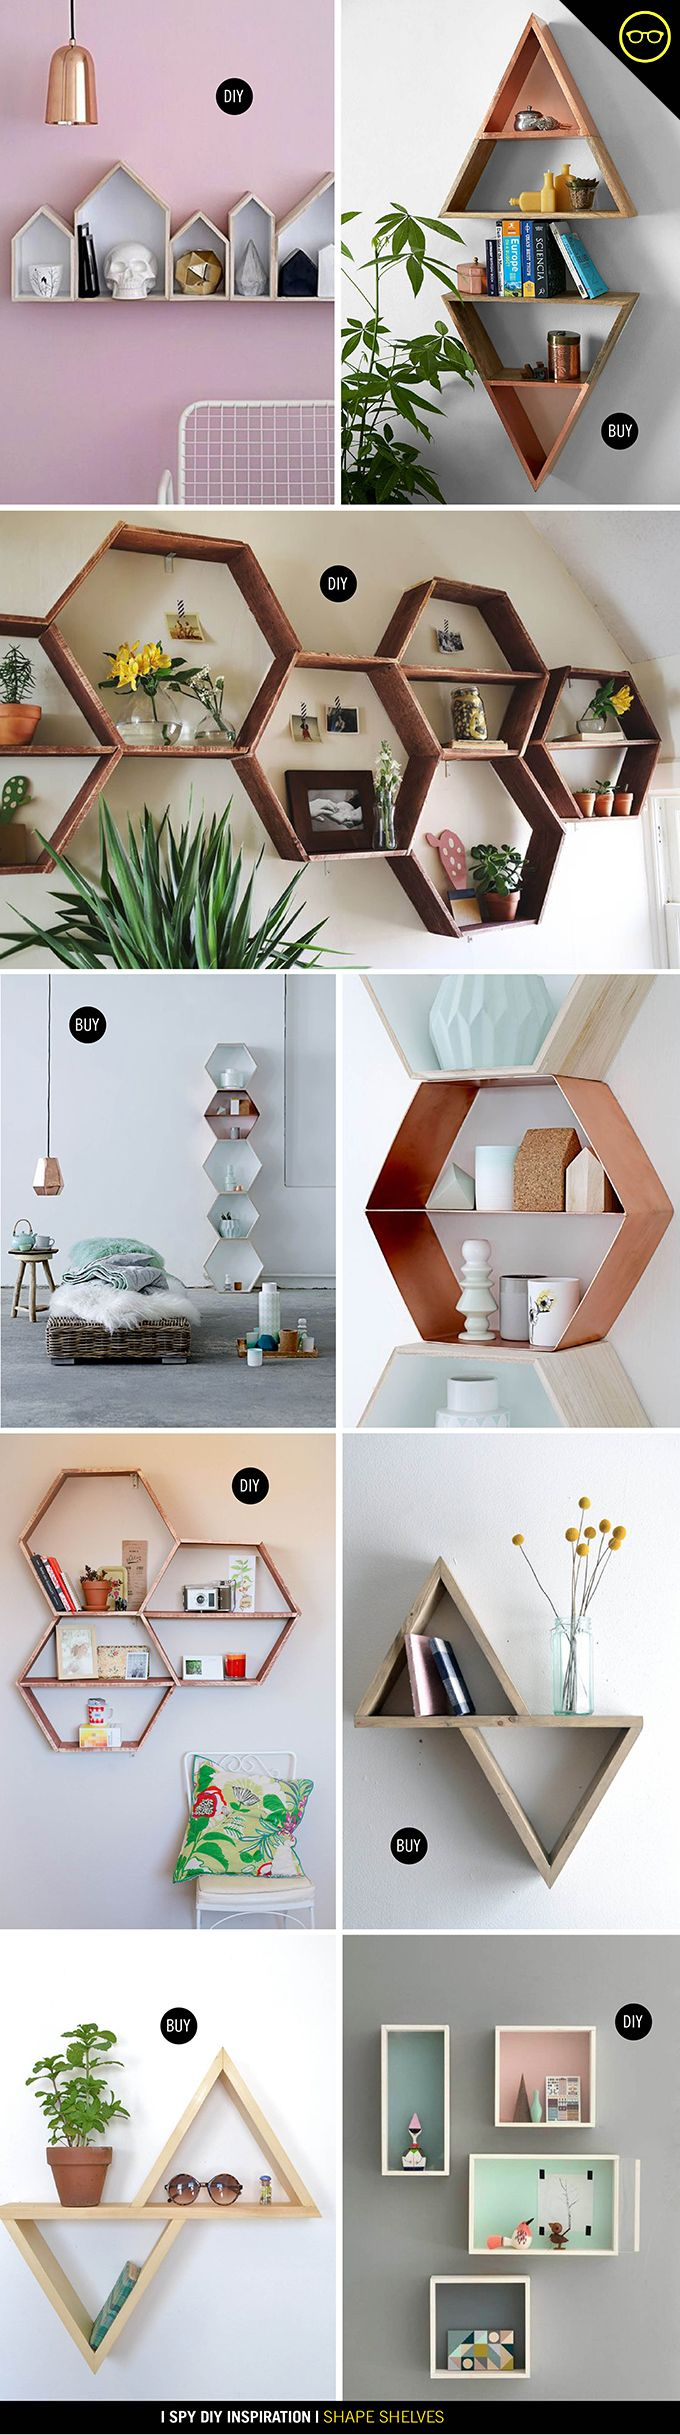 Best 25 geometric shelves ideas on pinterest diy wood shelves inspiration shape shelves i spy diy hexagon wall shelfhoneycomb shelvesgeometric amipublicfo Gallery